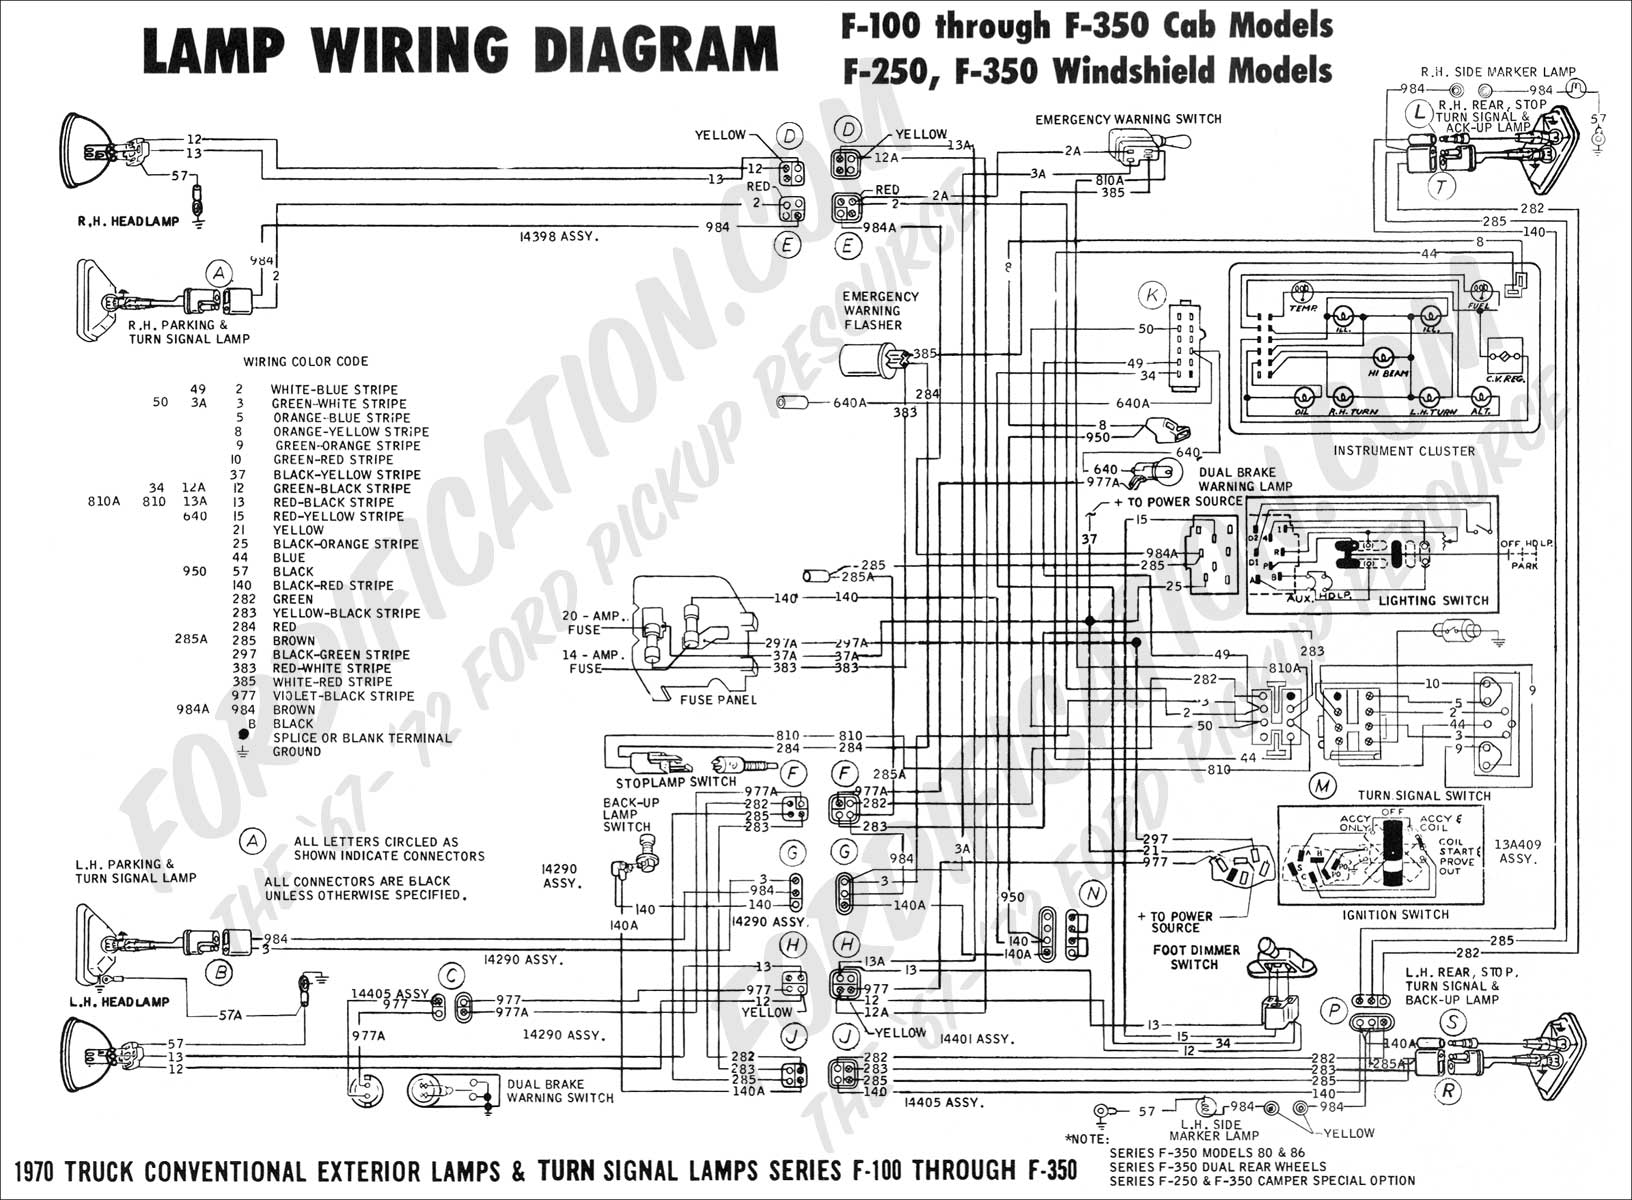 1969 Ford Mustang Wiring Diagram Also 1995 Jeep Grand Cherokee 1987 Wagoneer 2003 E350 Data